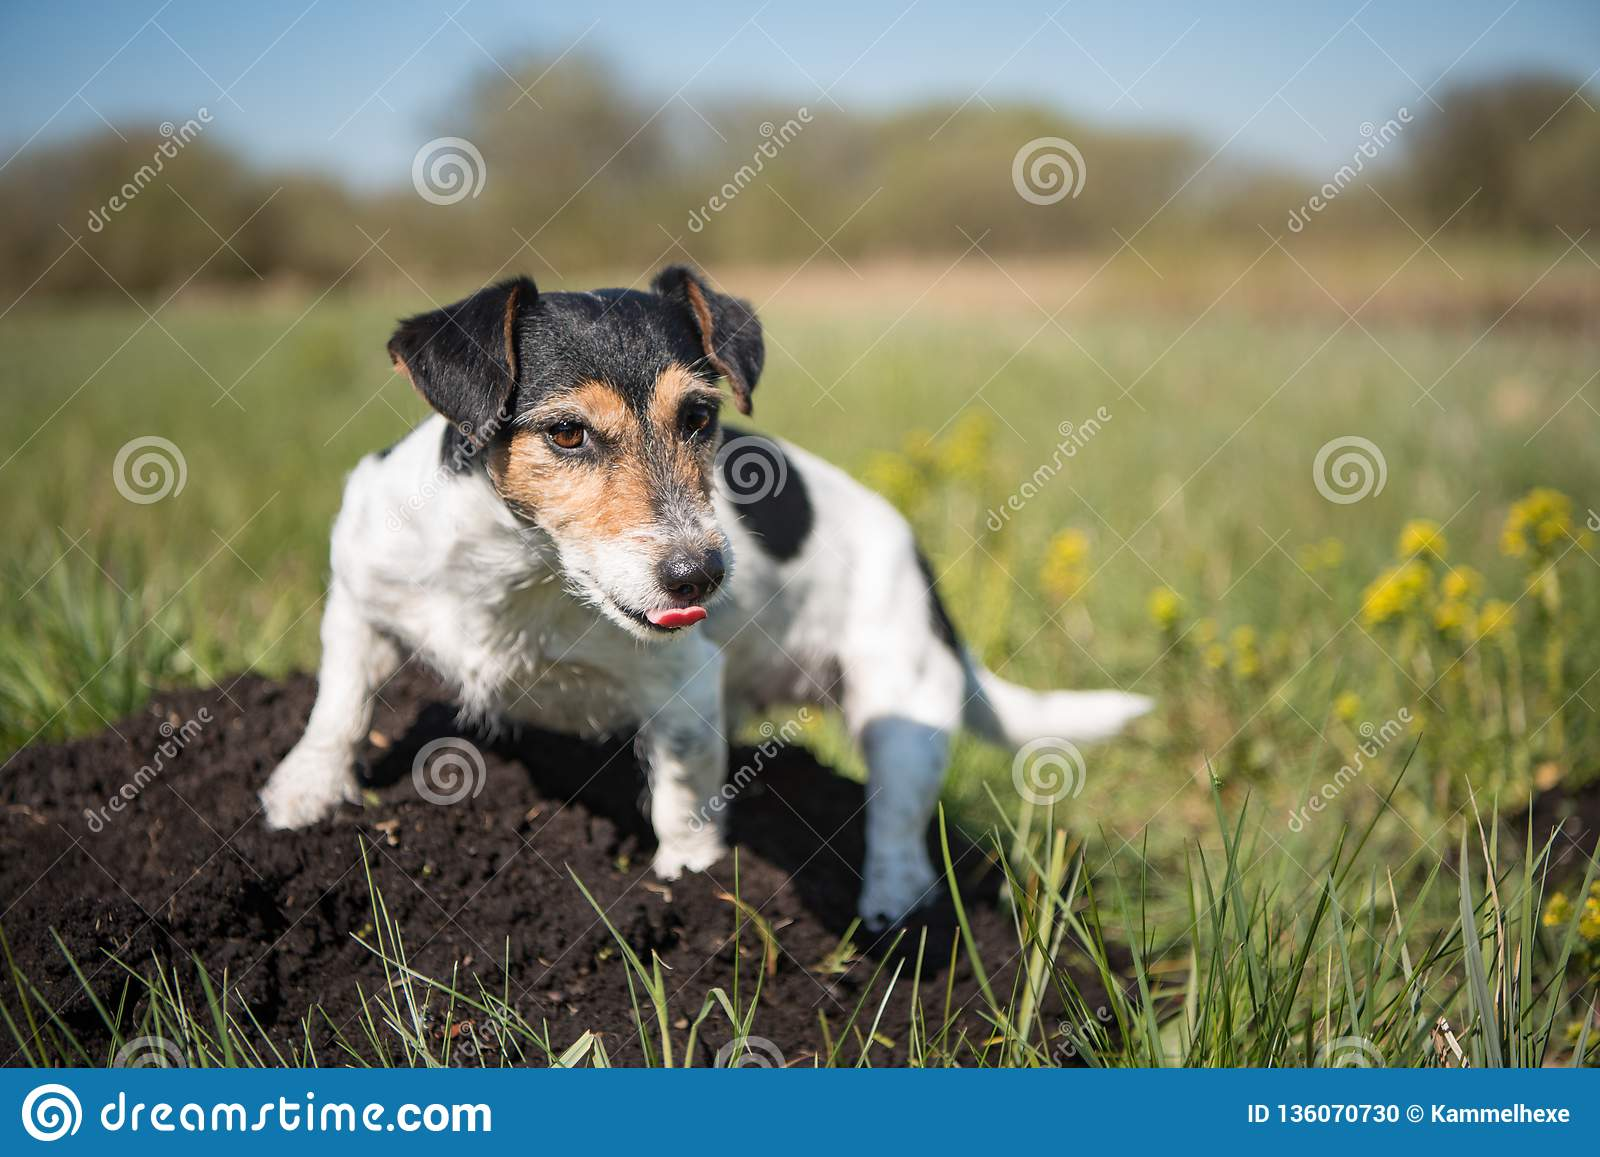 Dog is sitting on a molehill - Jack Russell Terrier 7 years ol